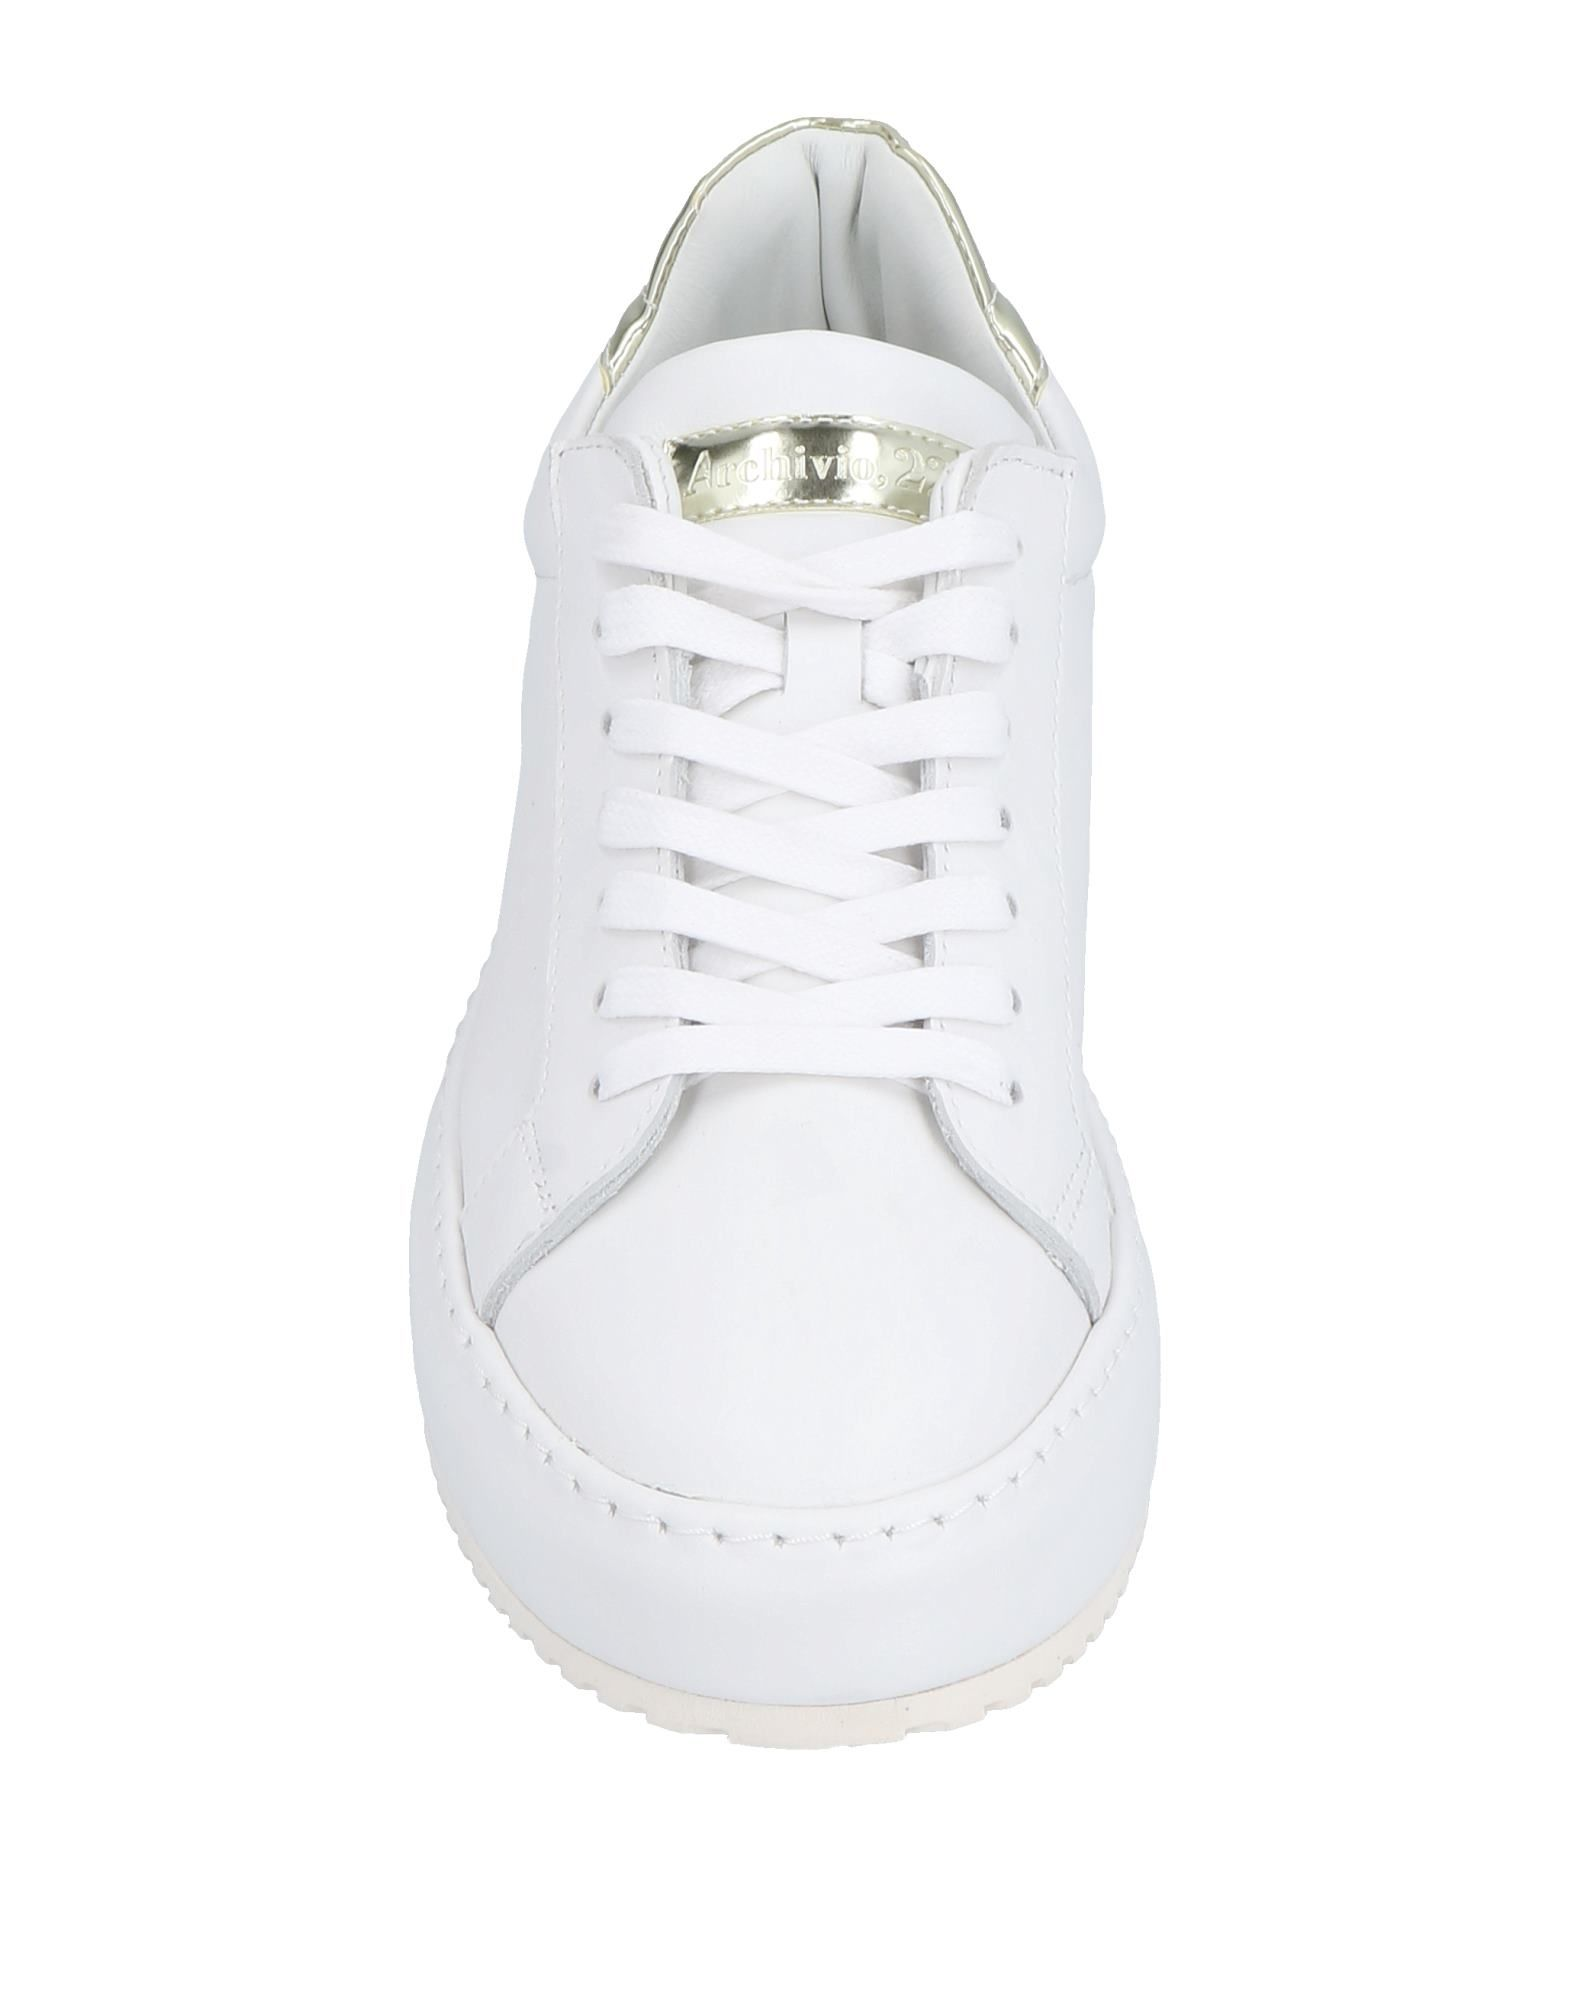 Archivio,22 Sneakers - Women Women Women Archivio,22 Sneakers online on  United Kingdom - 11499700HA a2cde7